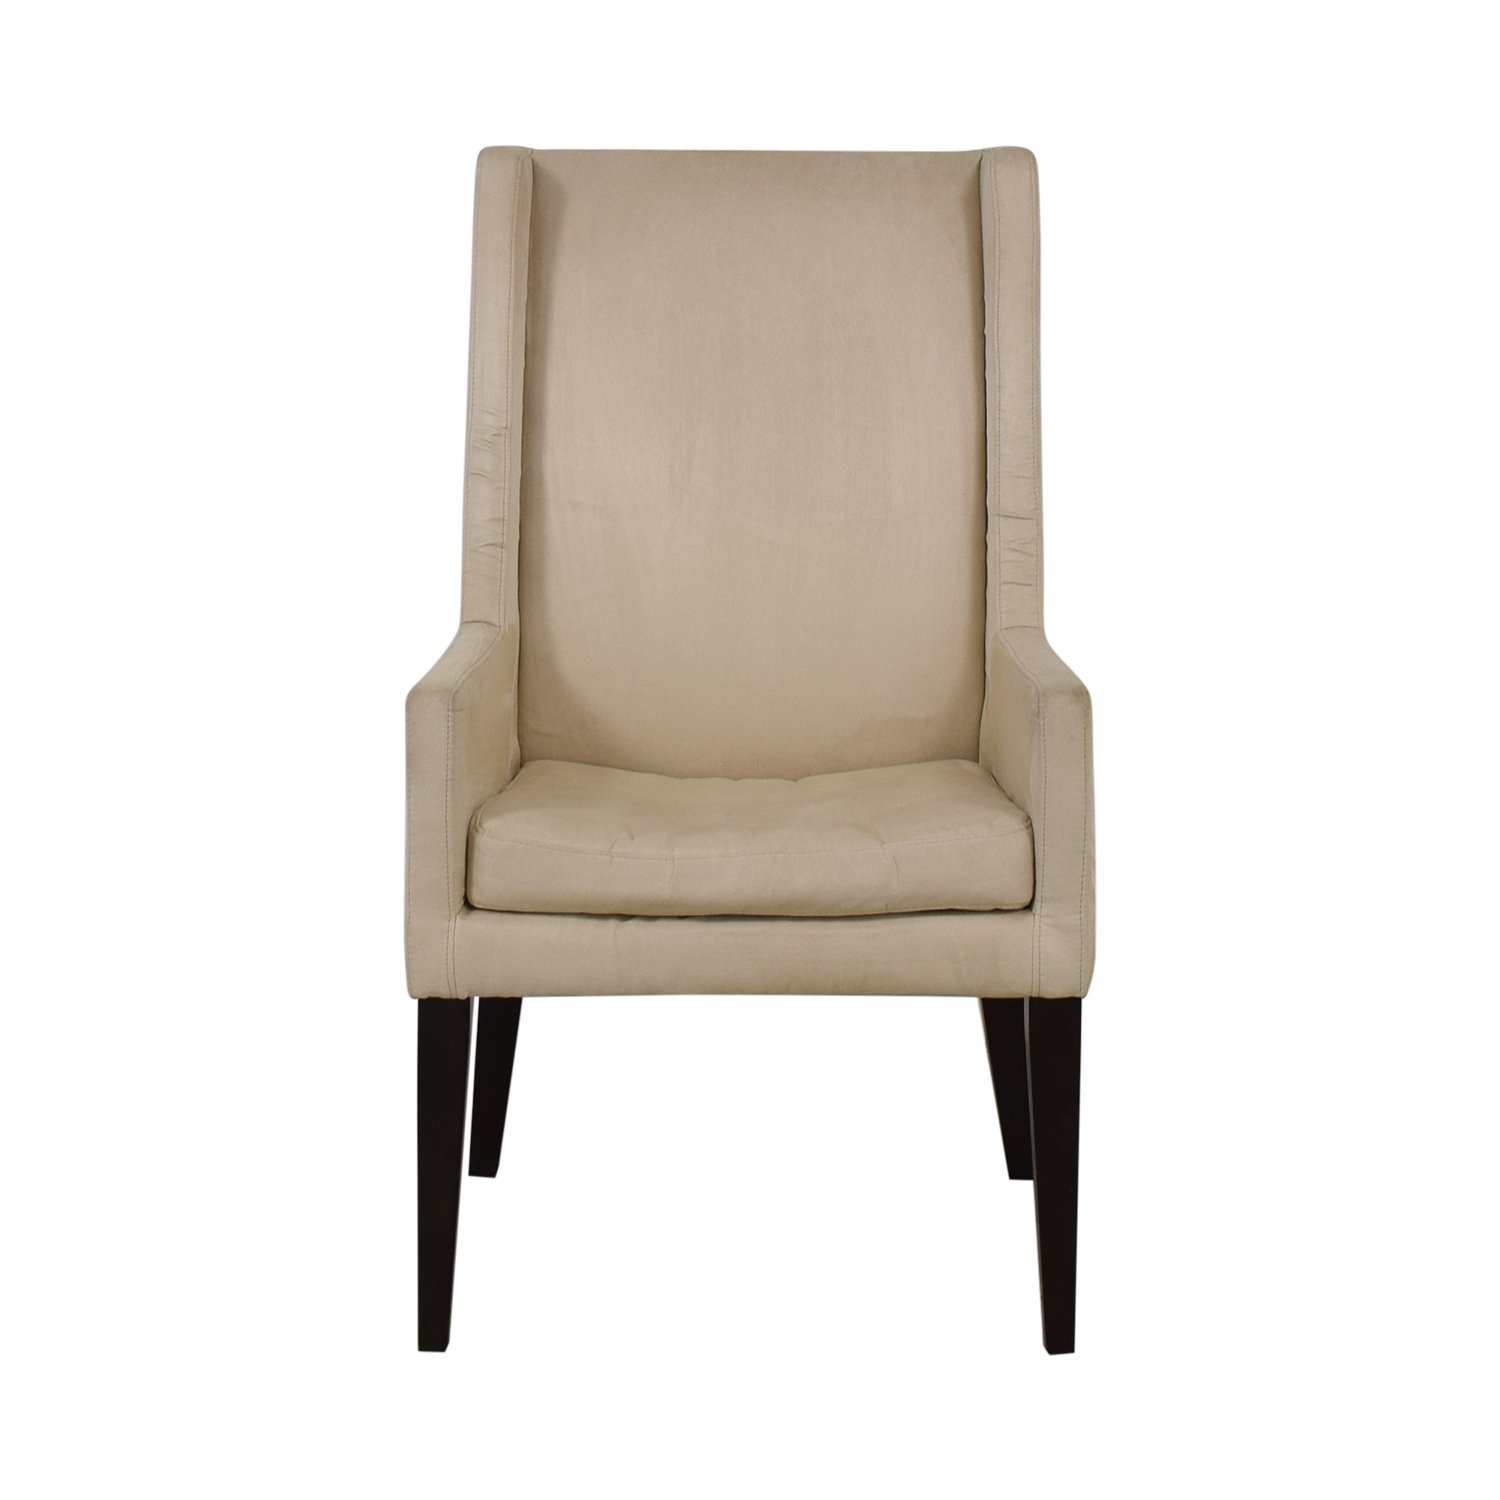 West Elm West Elm Modern Wing Chair beige